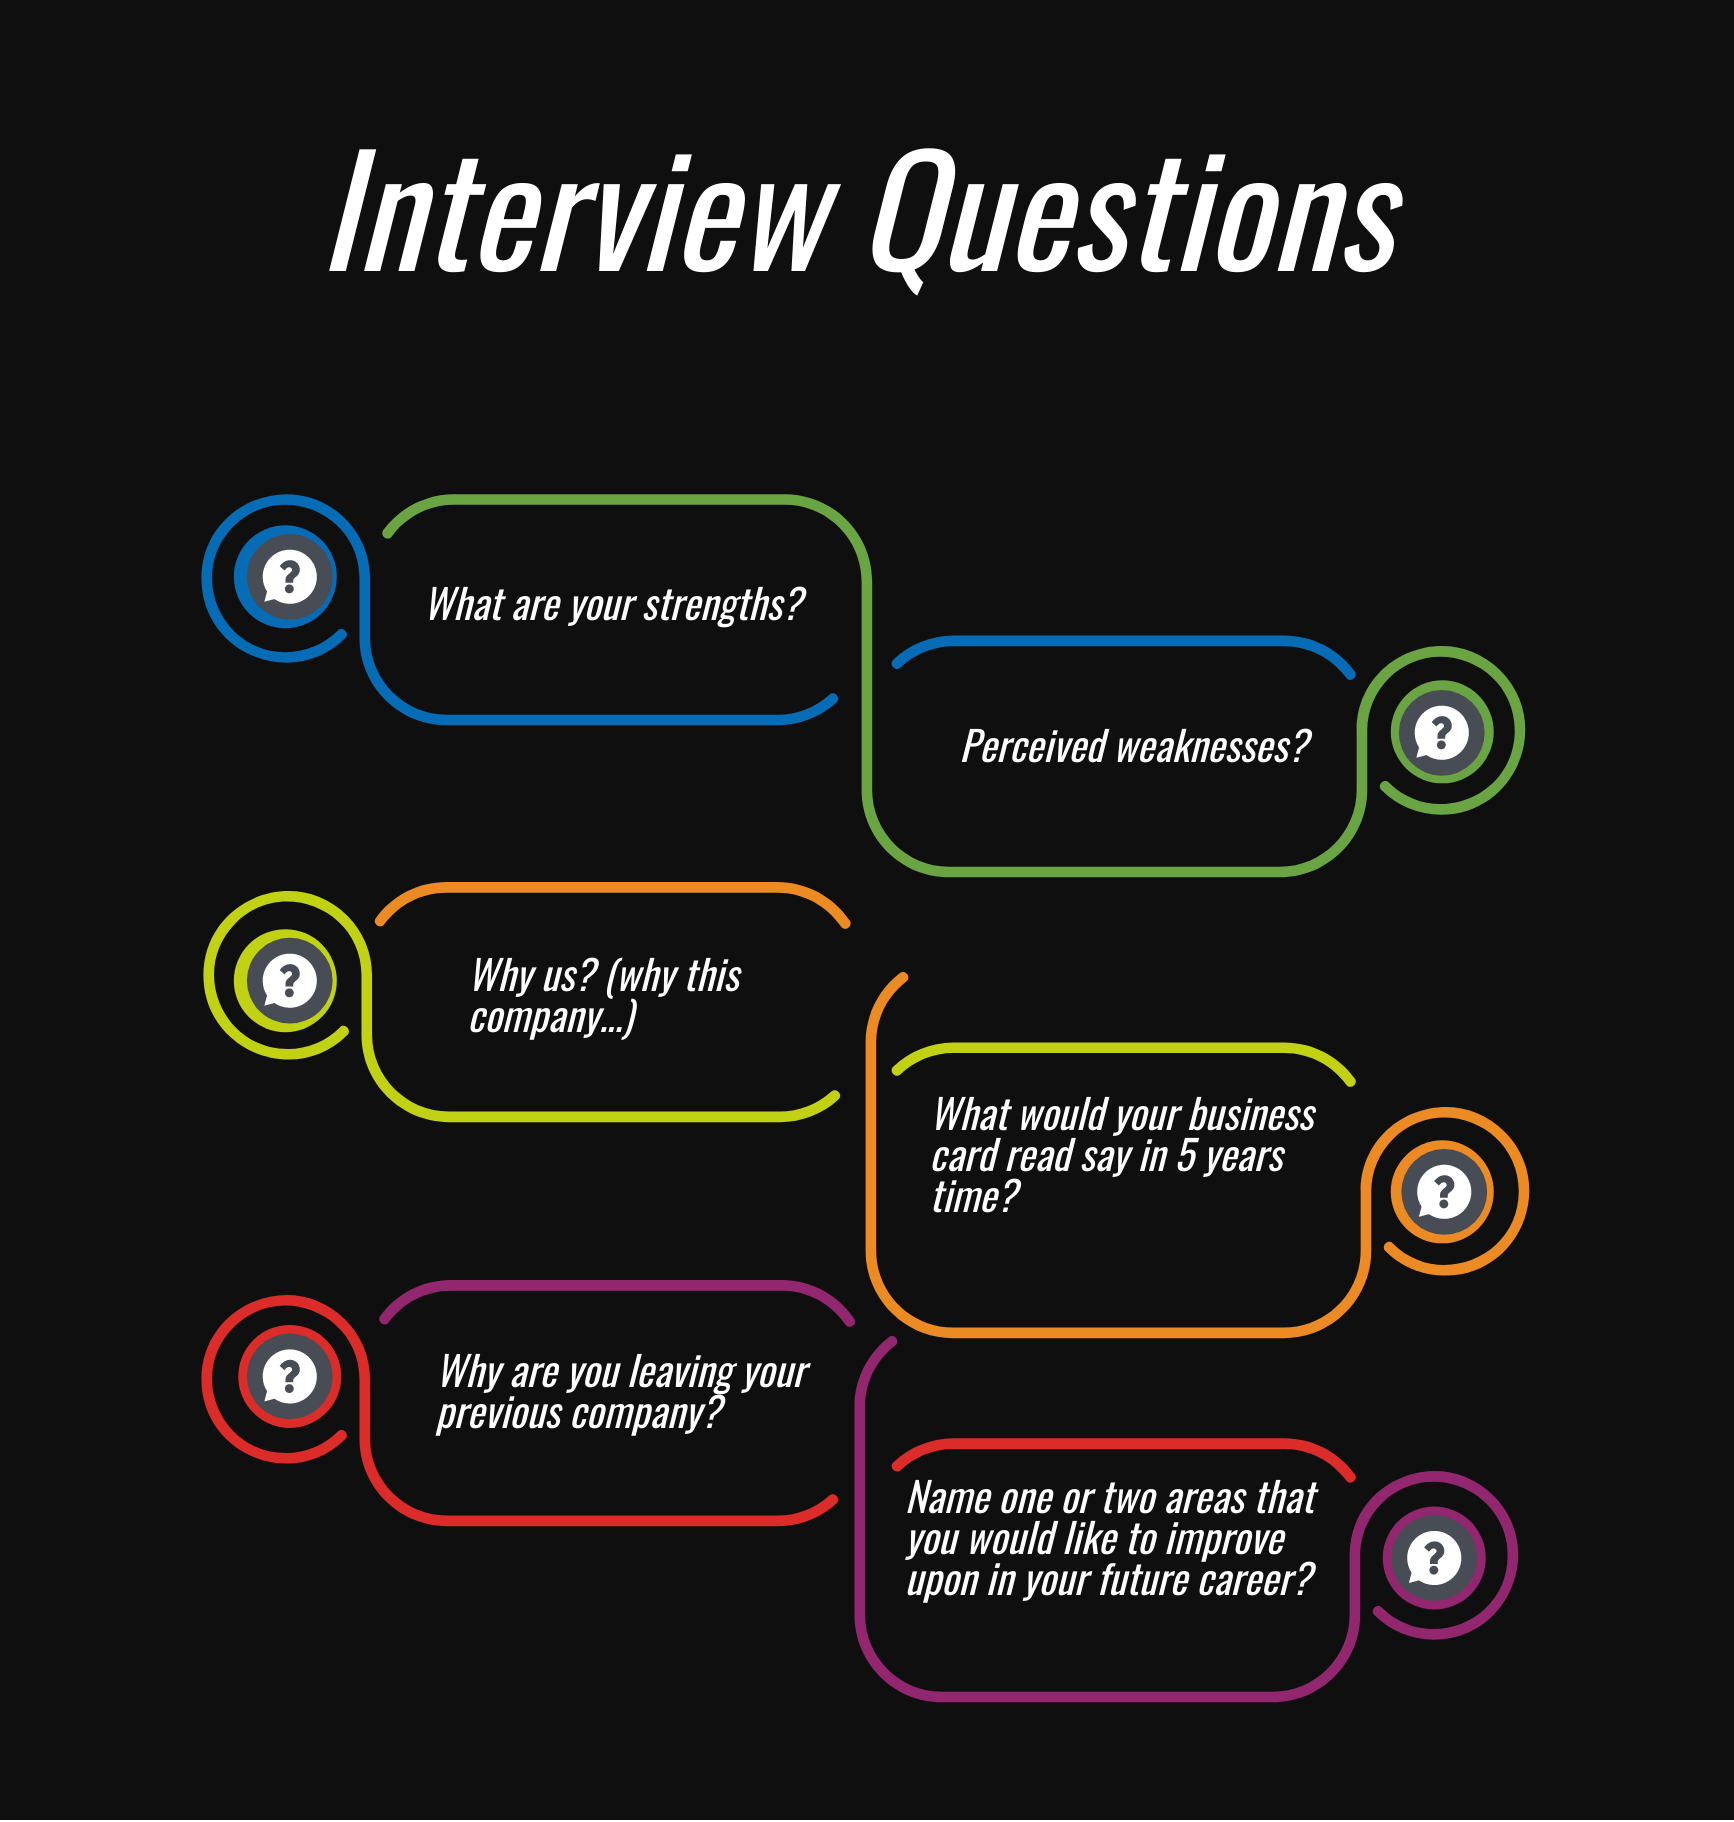 interview-questions.png questions most commonly asked